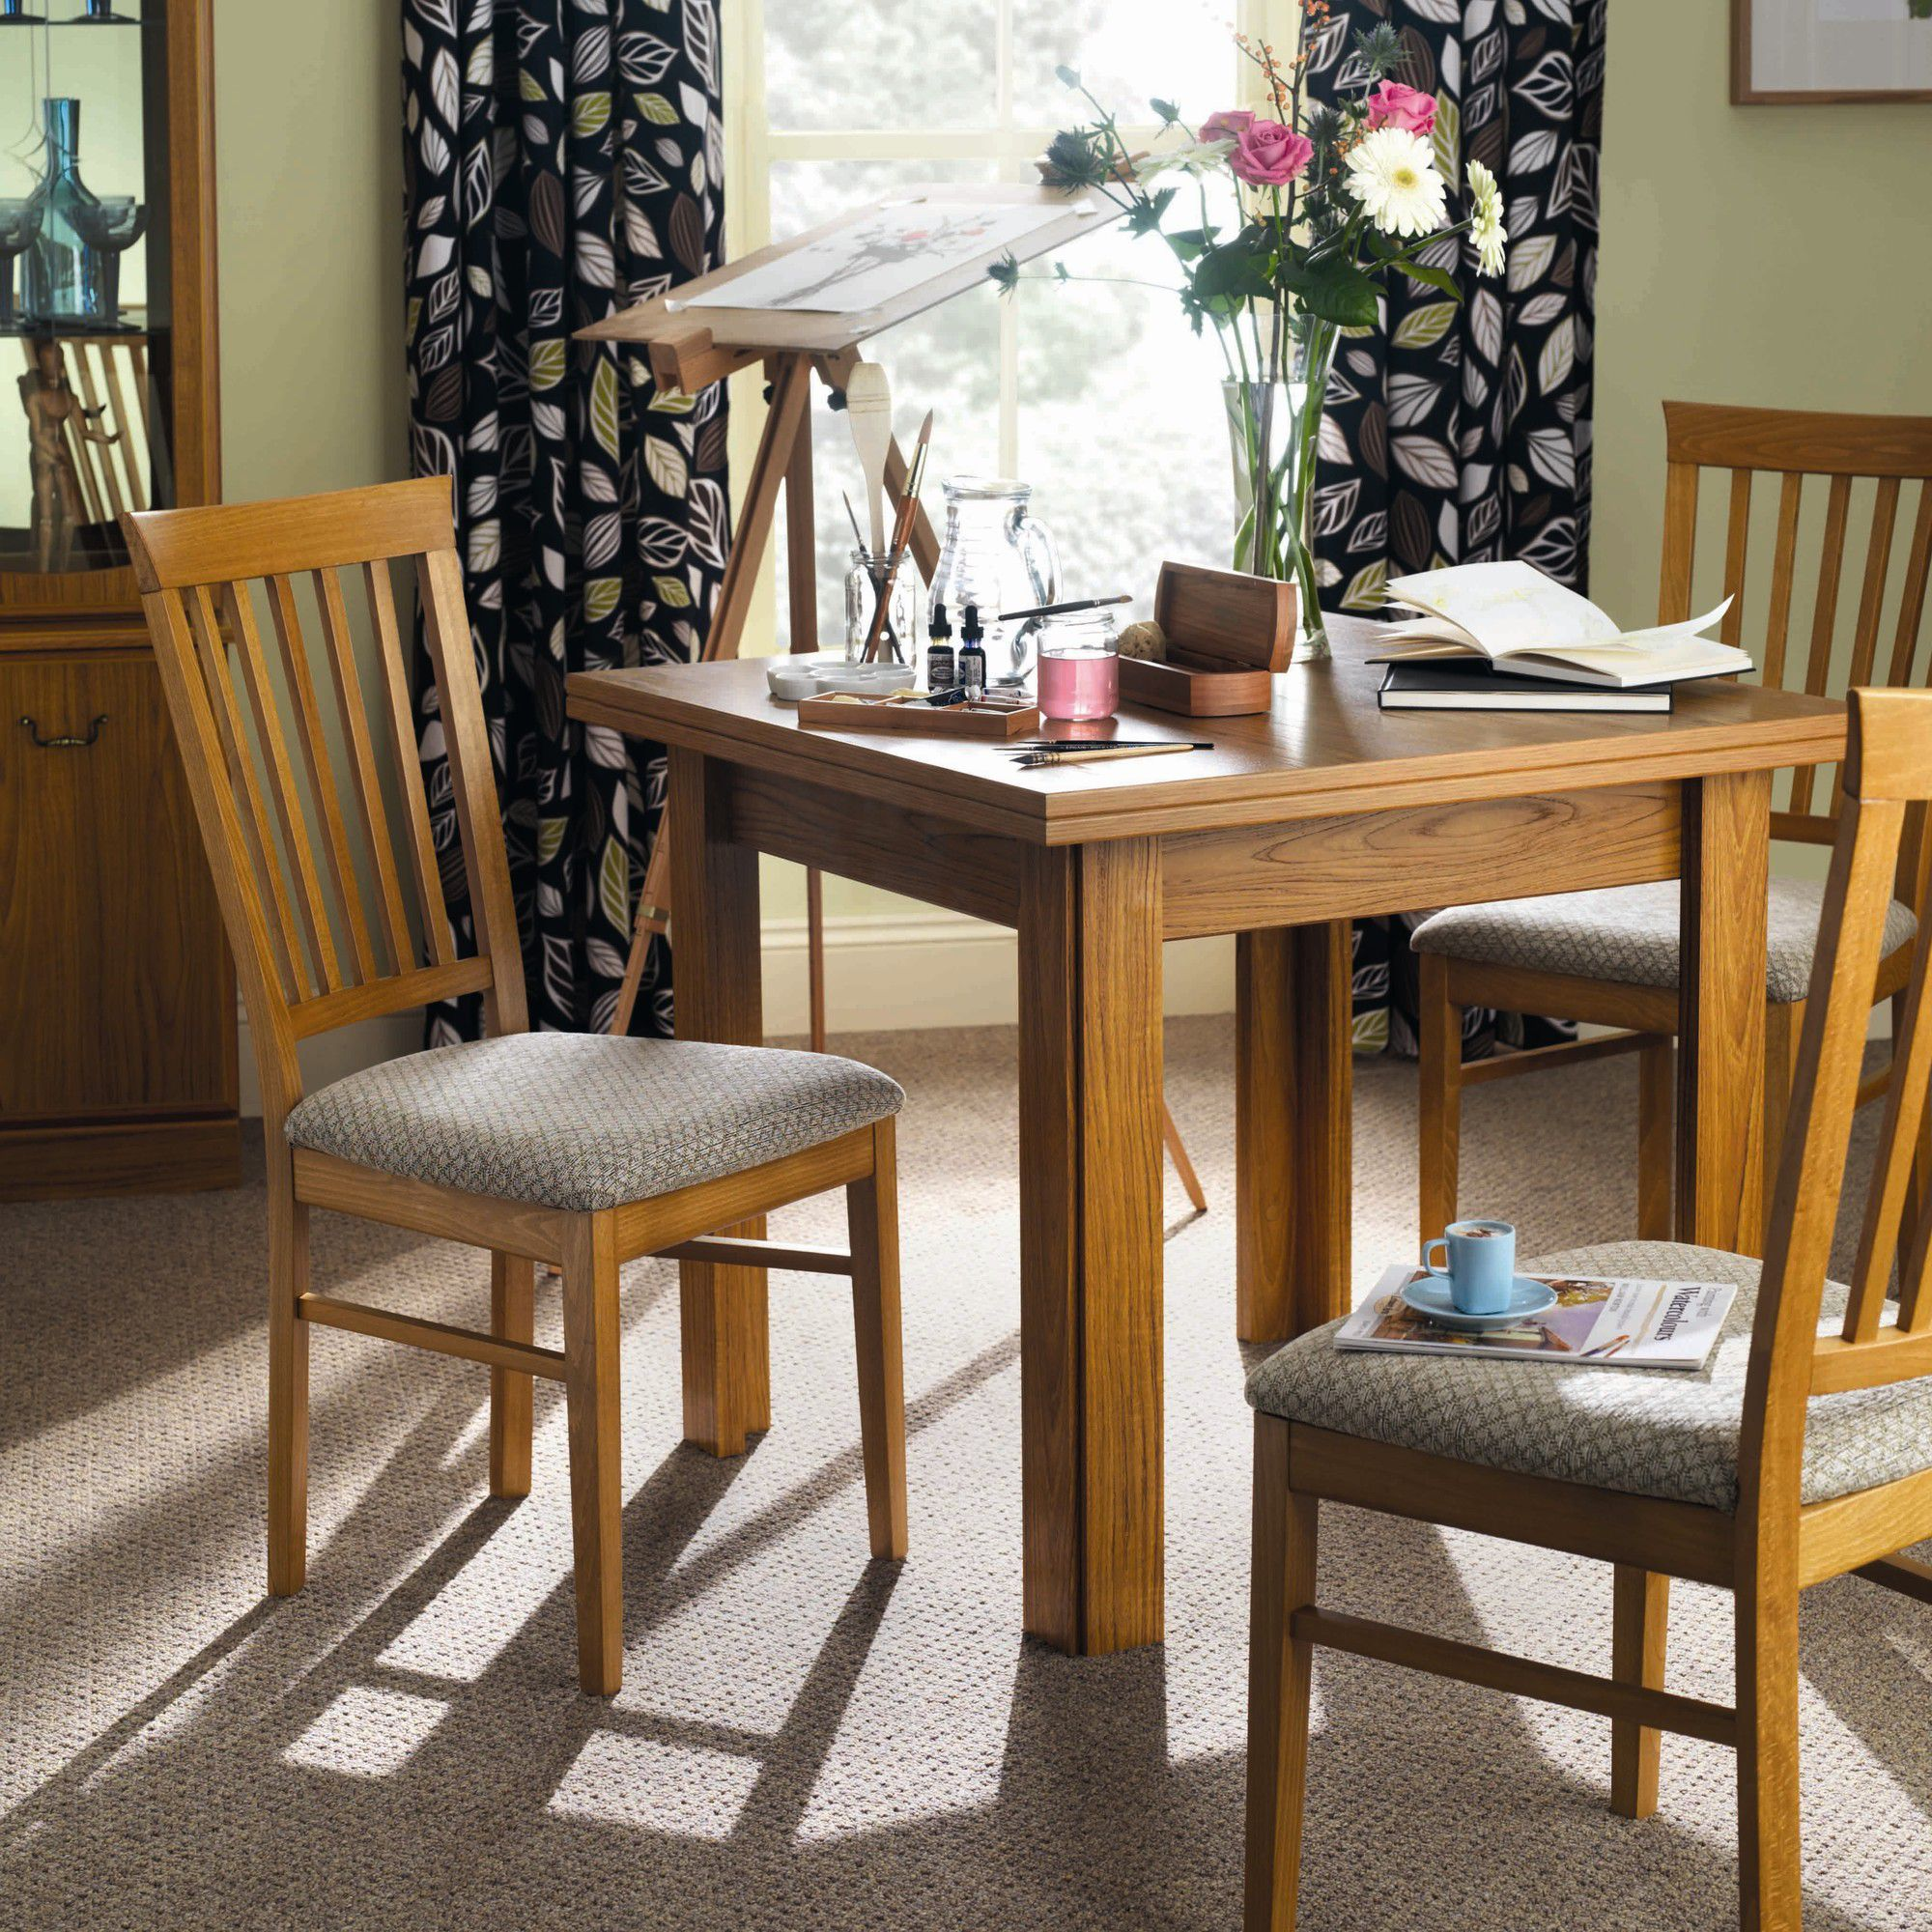 Caxton Tennyson Butterfly Dining Set with 4 Slatted Back Dining Chairs in Teak - Oyster Beige at Tesco Direct